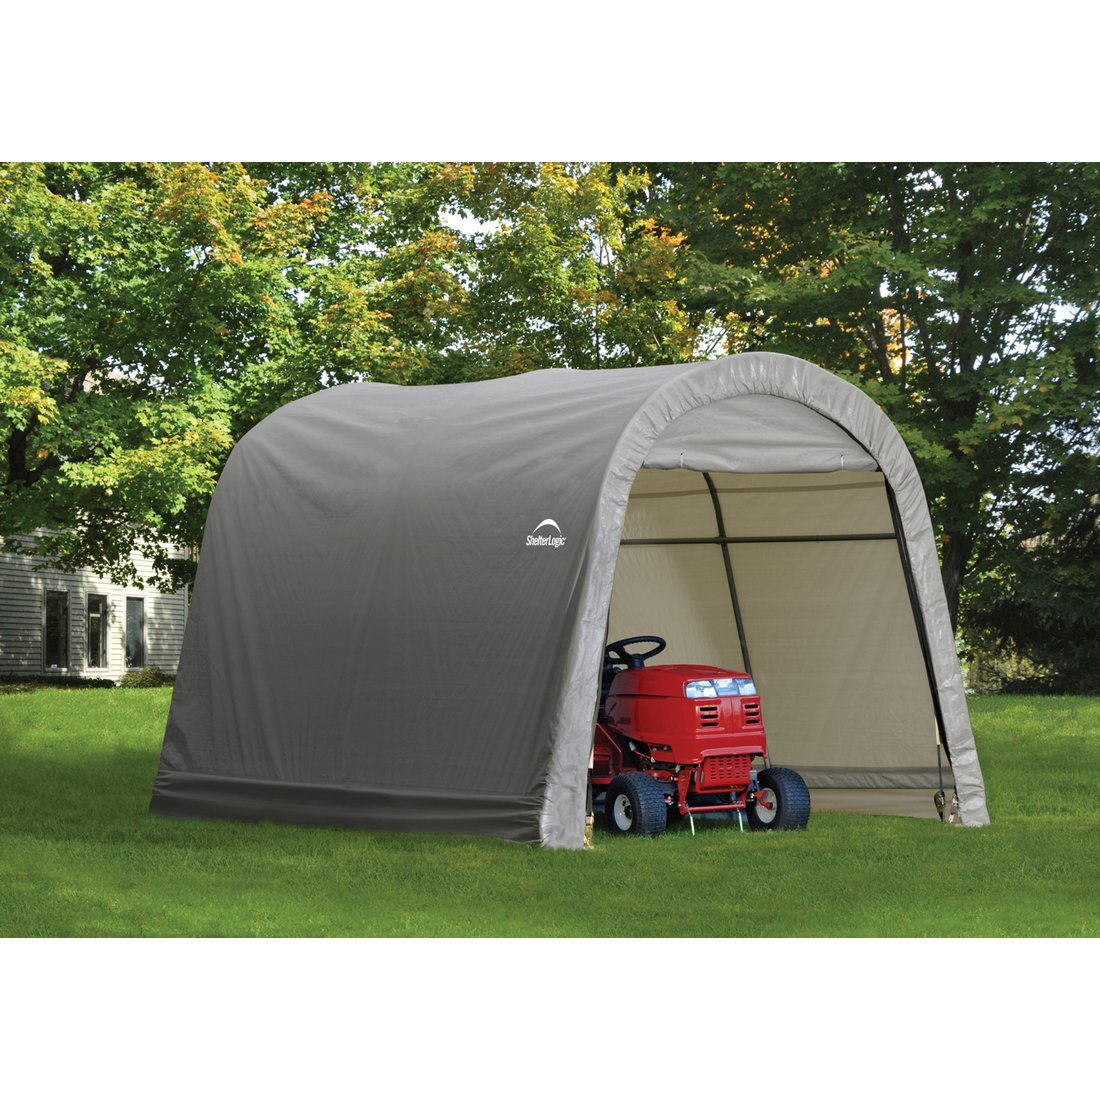 x a lowes peak box sheds style canopy shelterlogic storage shed gray in